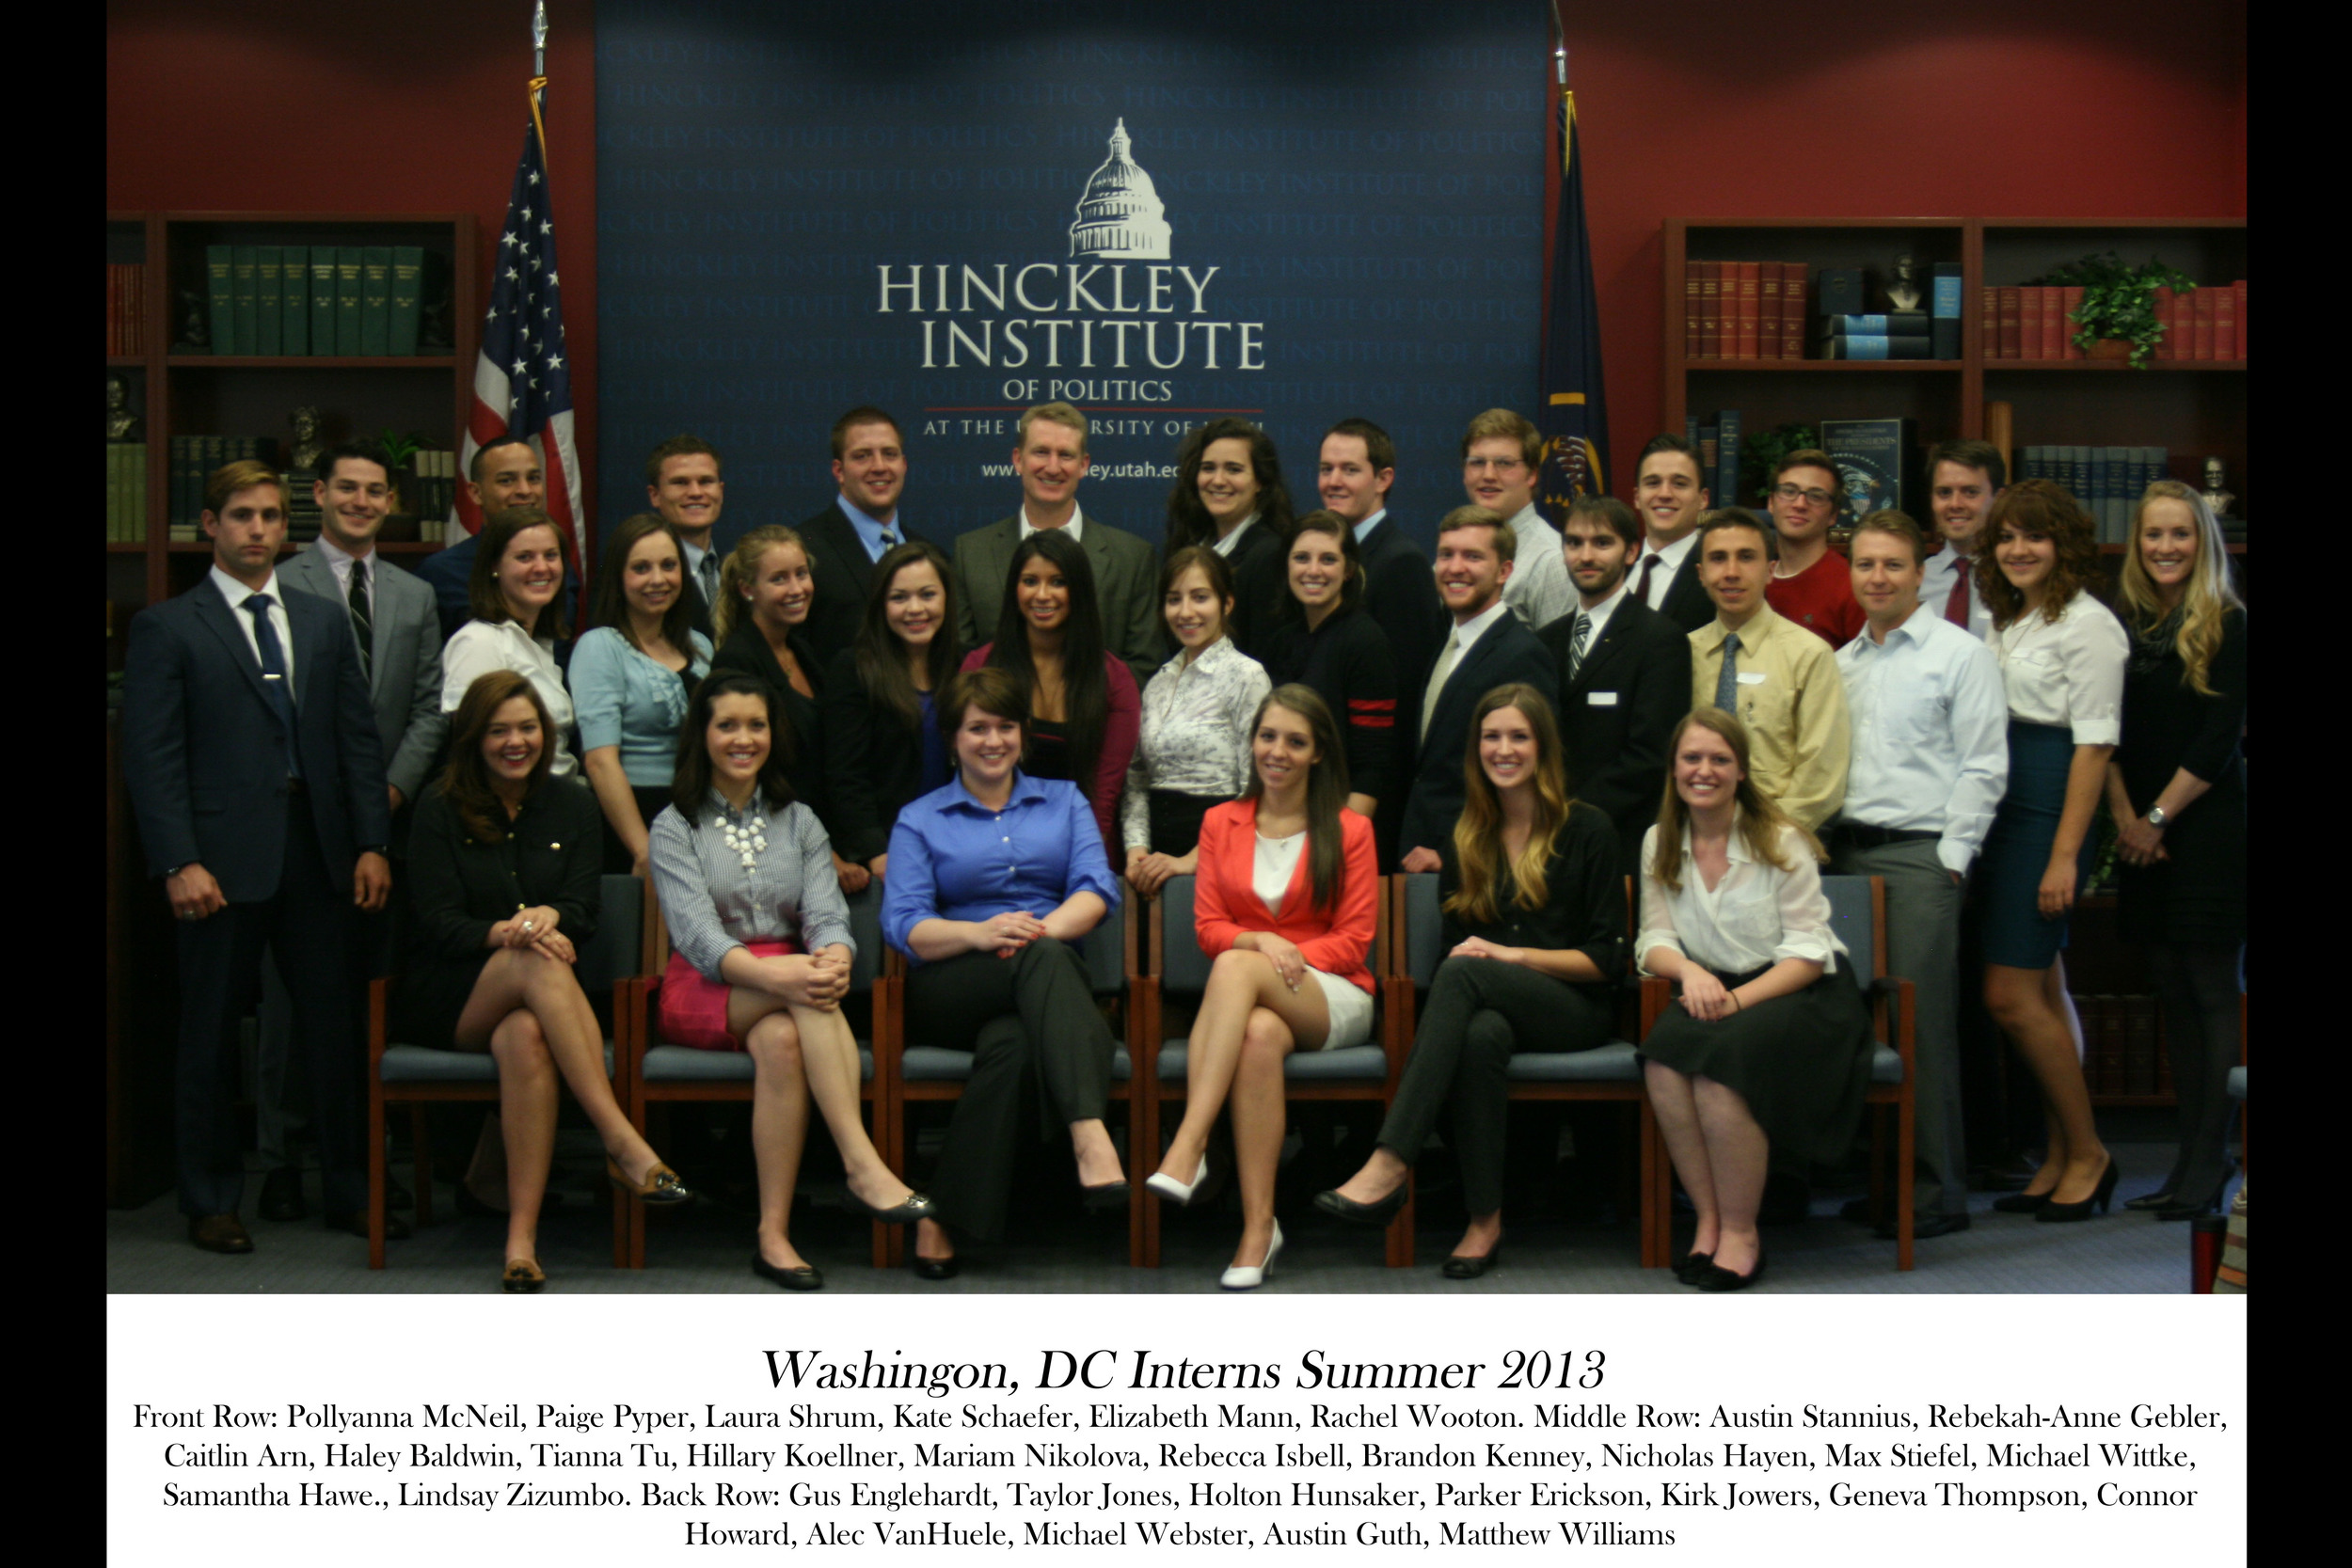 8x12 DC Interns Summer 2013.jpg